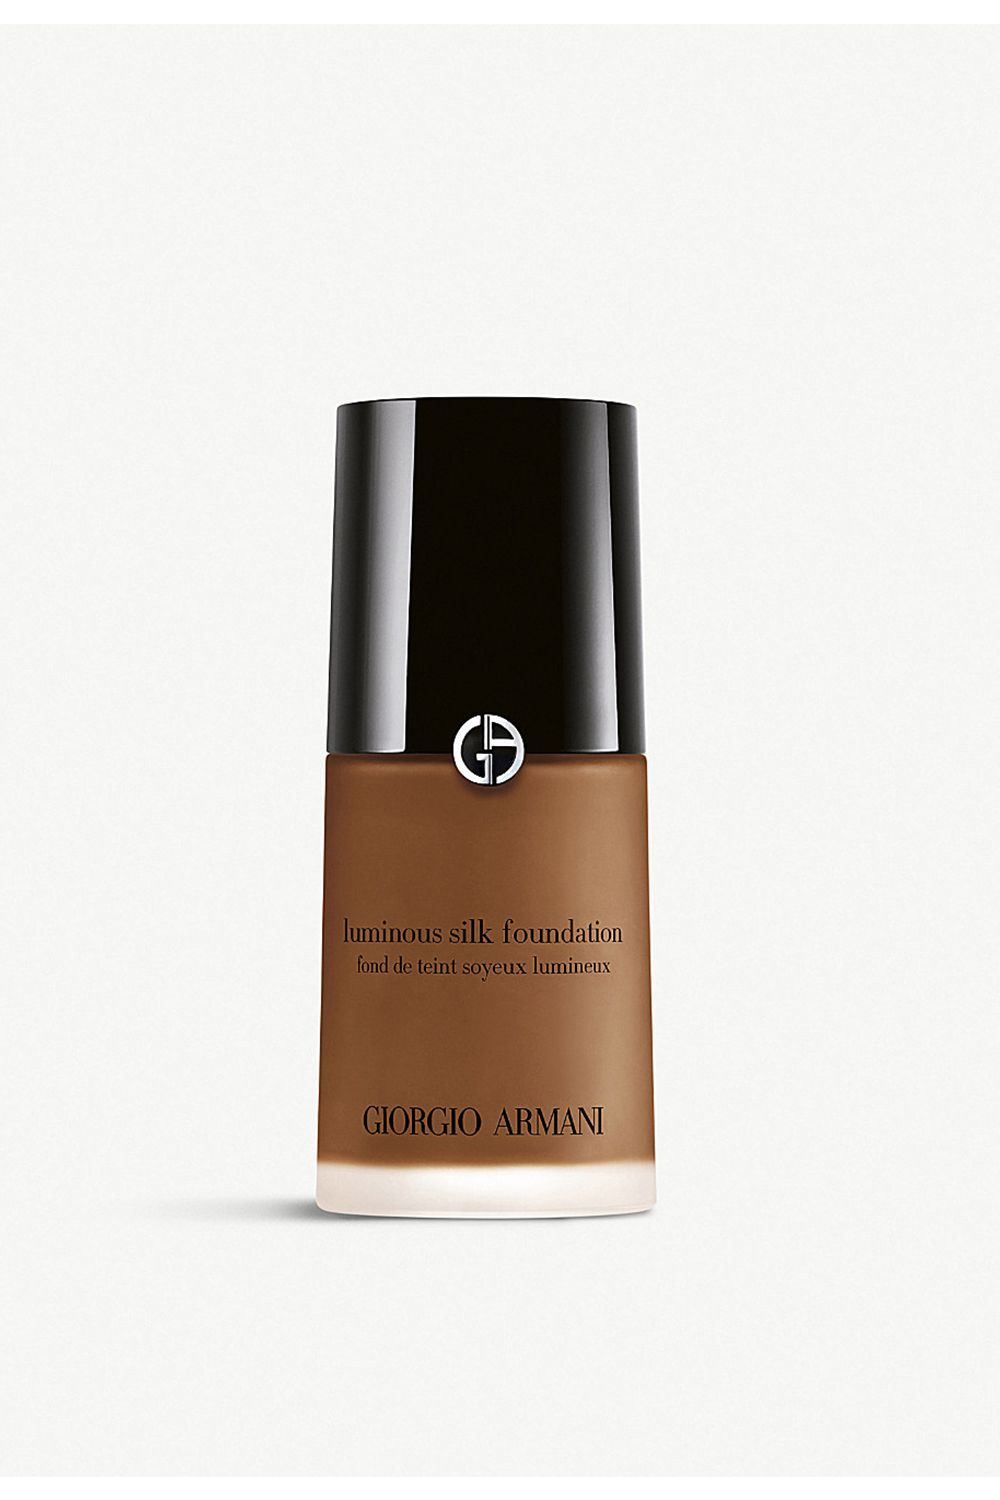 Best Foundations for Darker Skin Tones — Foundation Guide for Women of Color